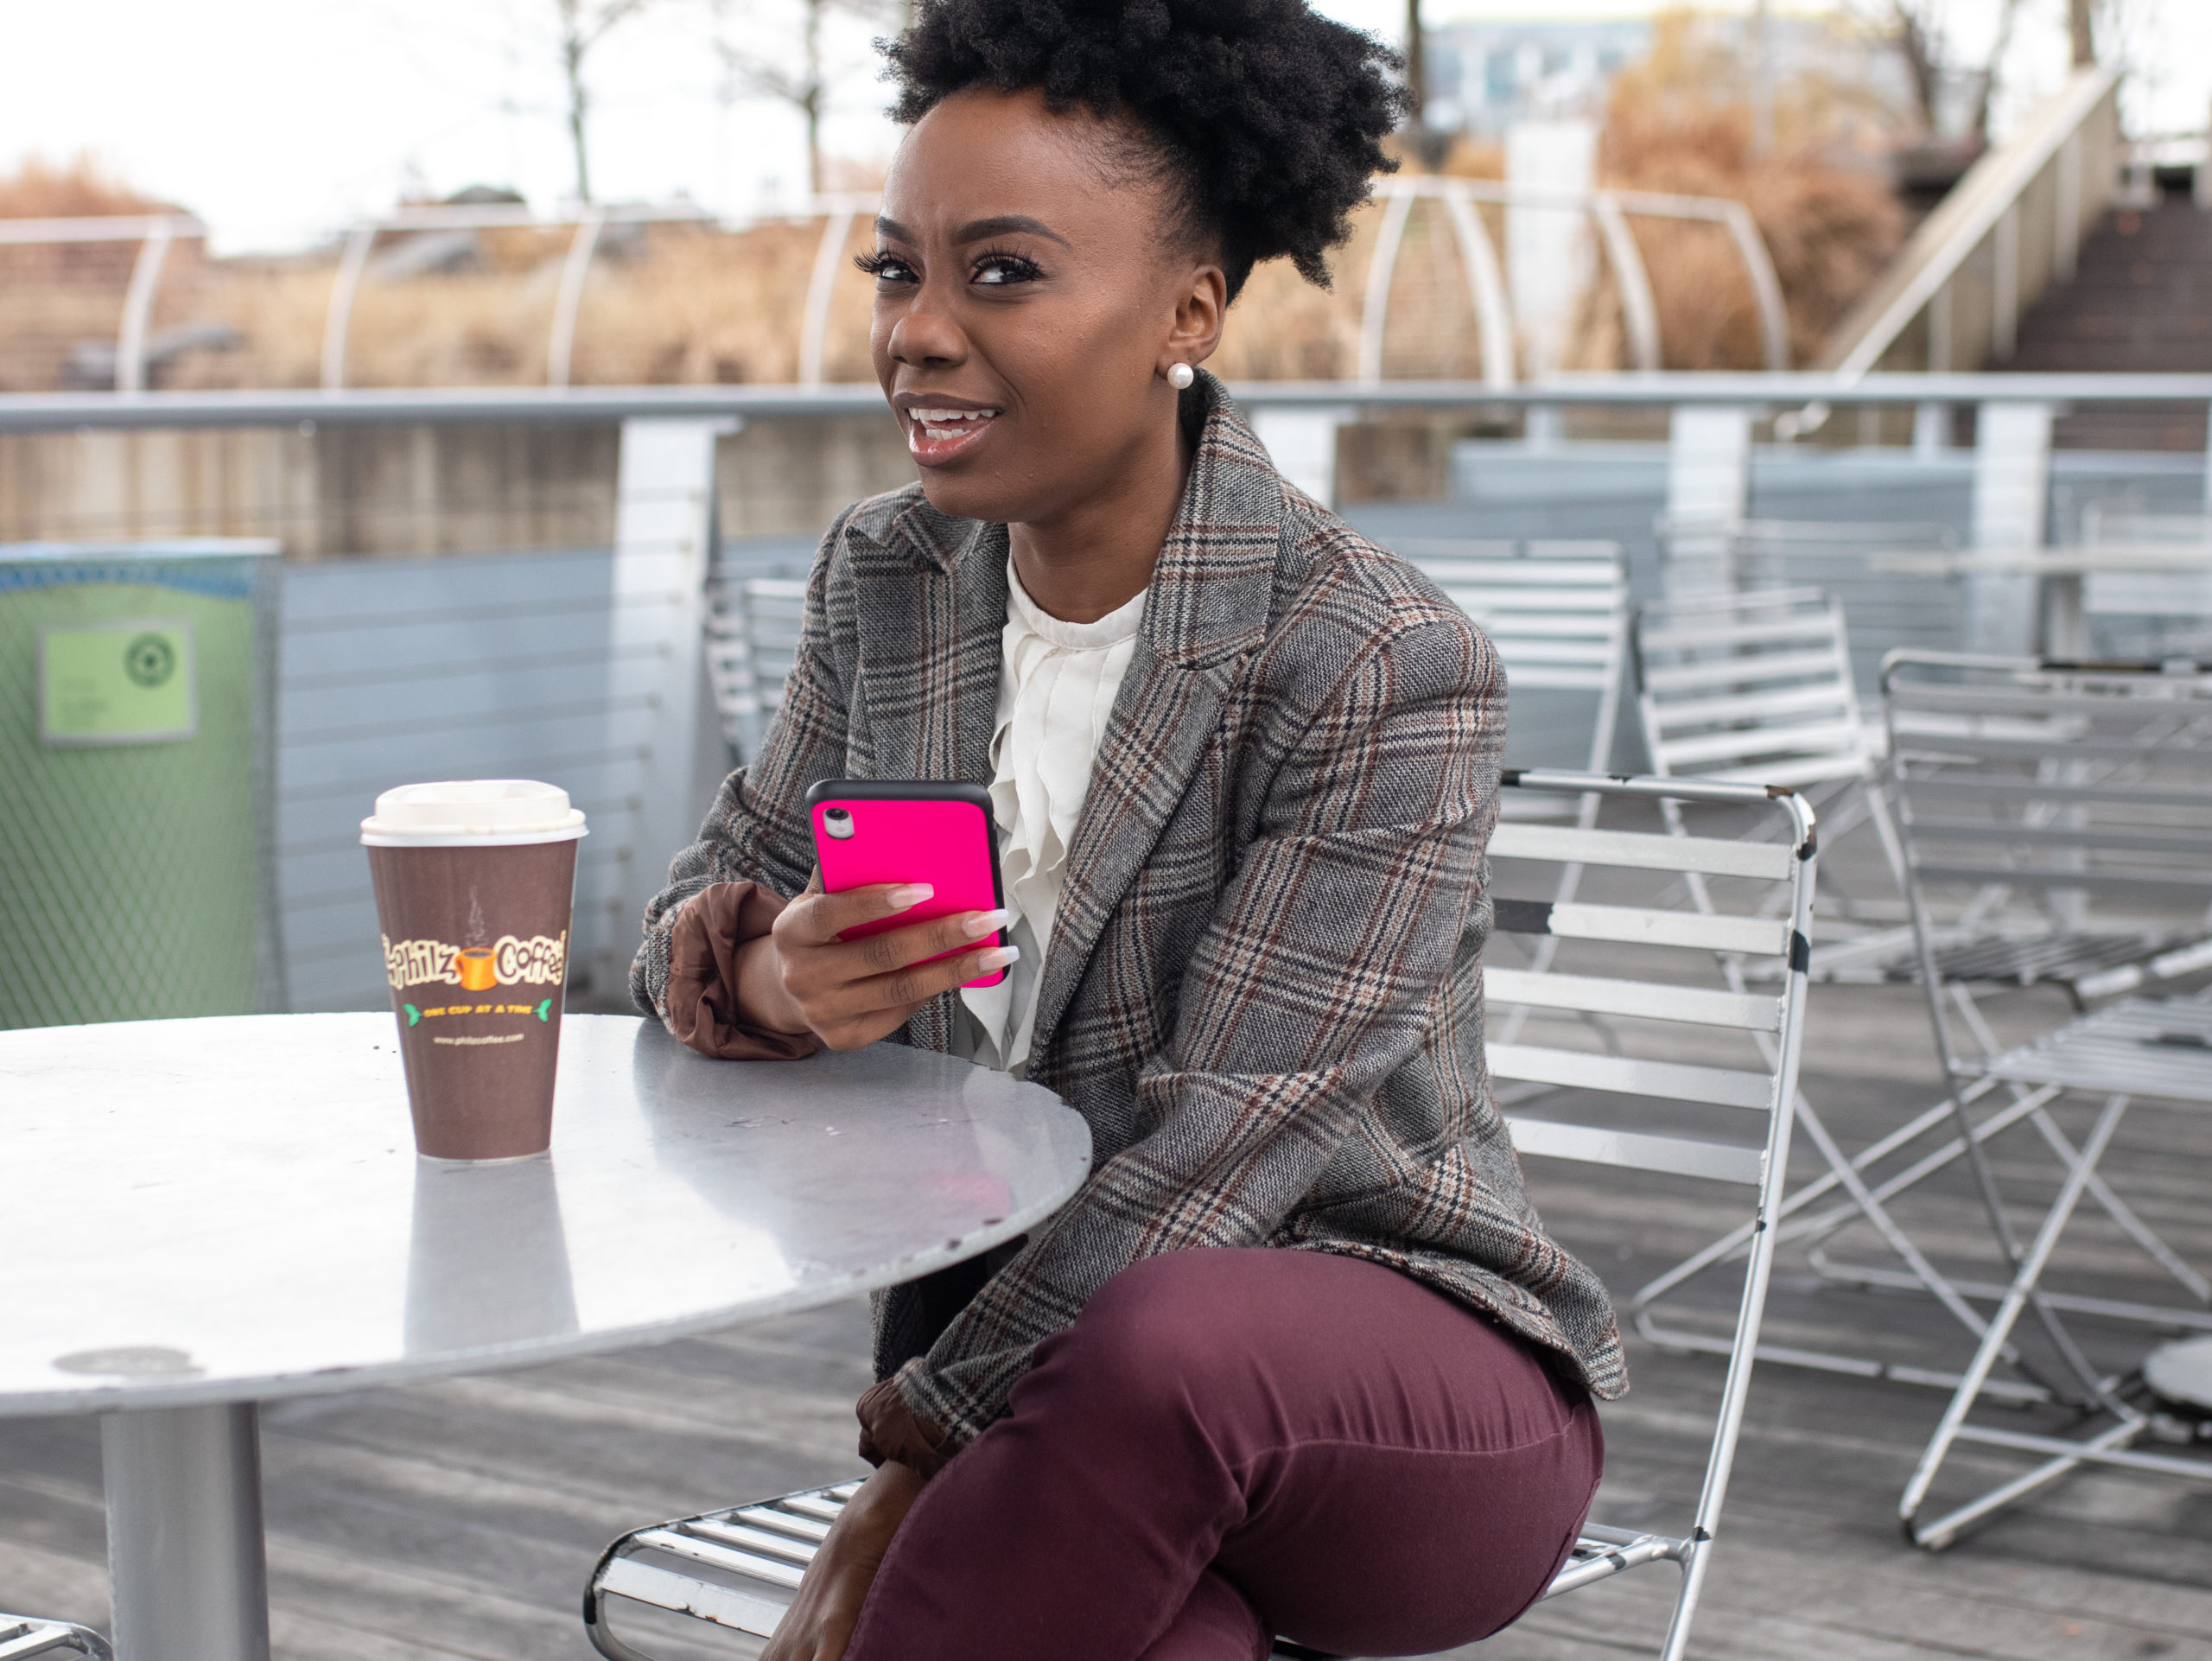 Black woman sitting outside on a patio with a confused look on her face, holding a neon pick phone and disposable coffee cup at the table